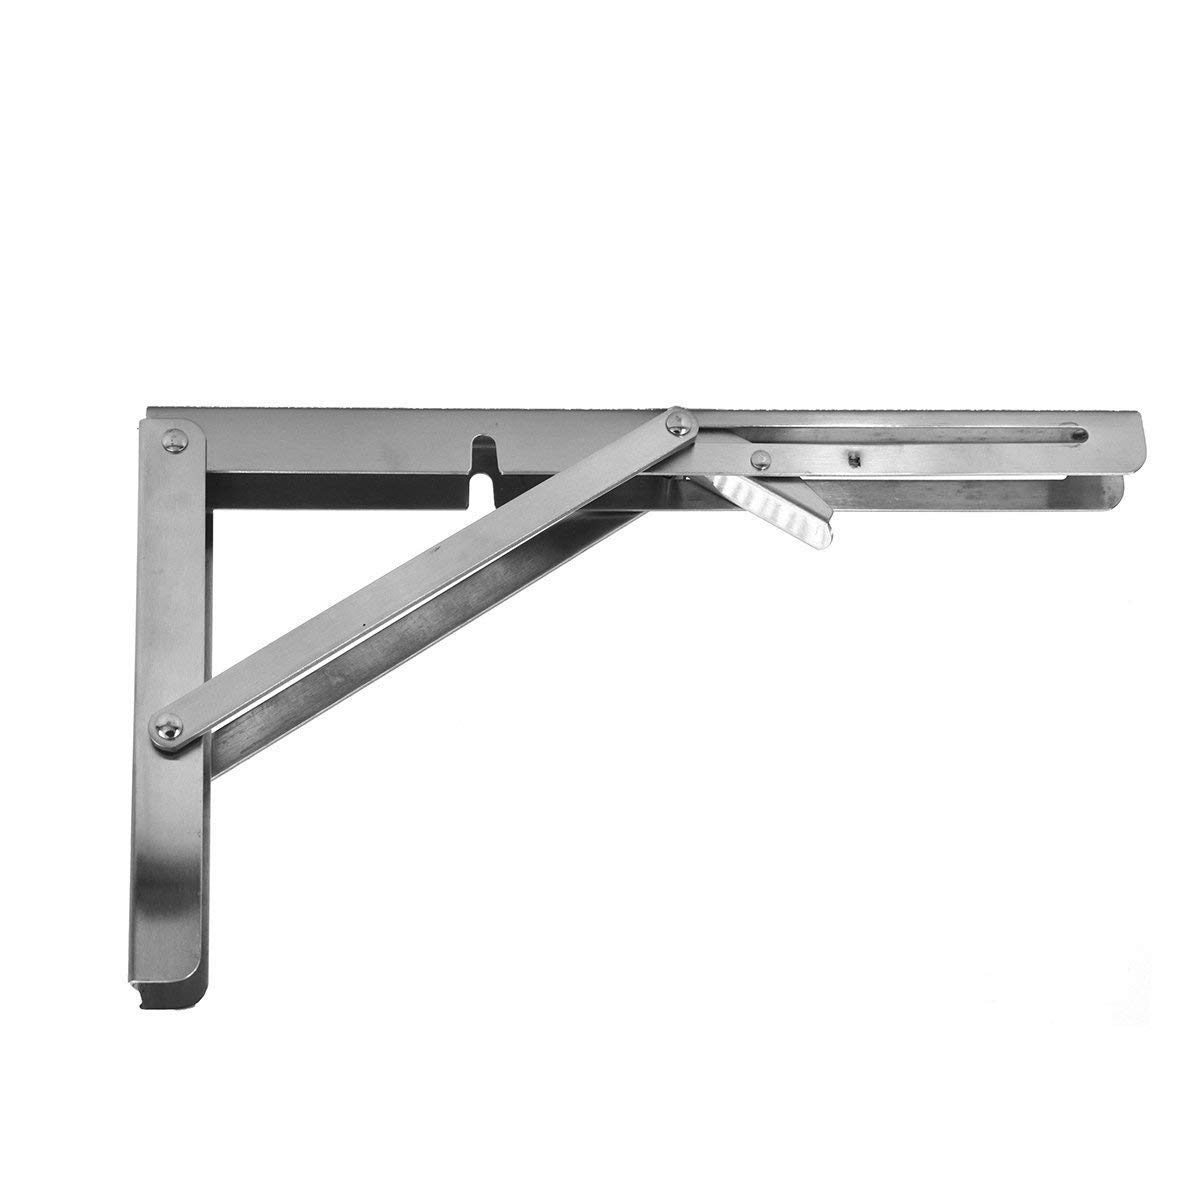 Heavy Duty Release Arm Folding Shelf Bench Table Stainless Steel Collapsible Bracket for Kitchen Park Patio Office Washroom, 12 inch Max Loading: 551LB / 250KG FST